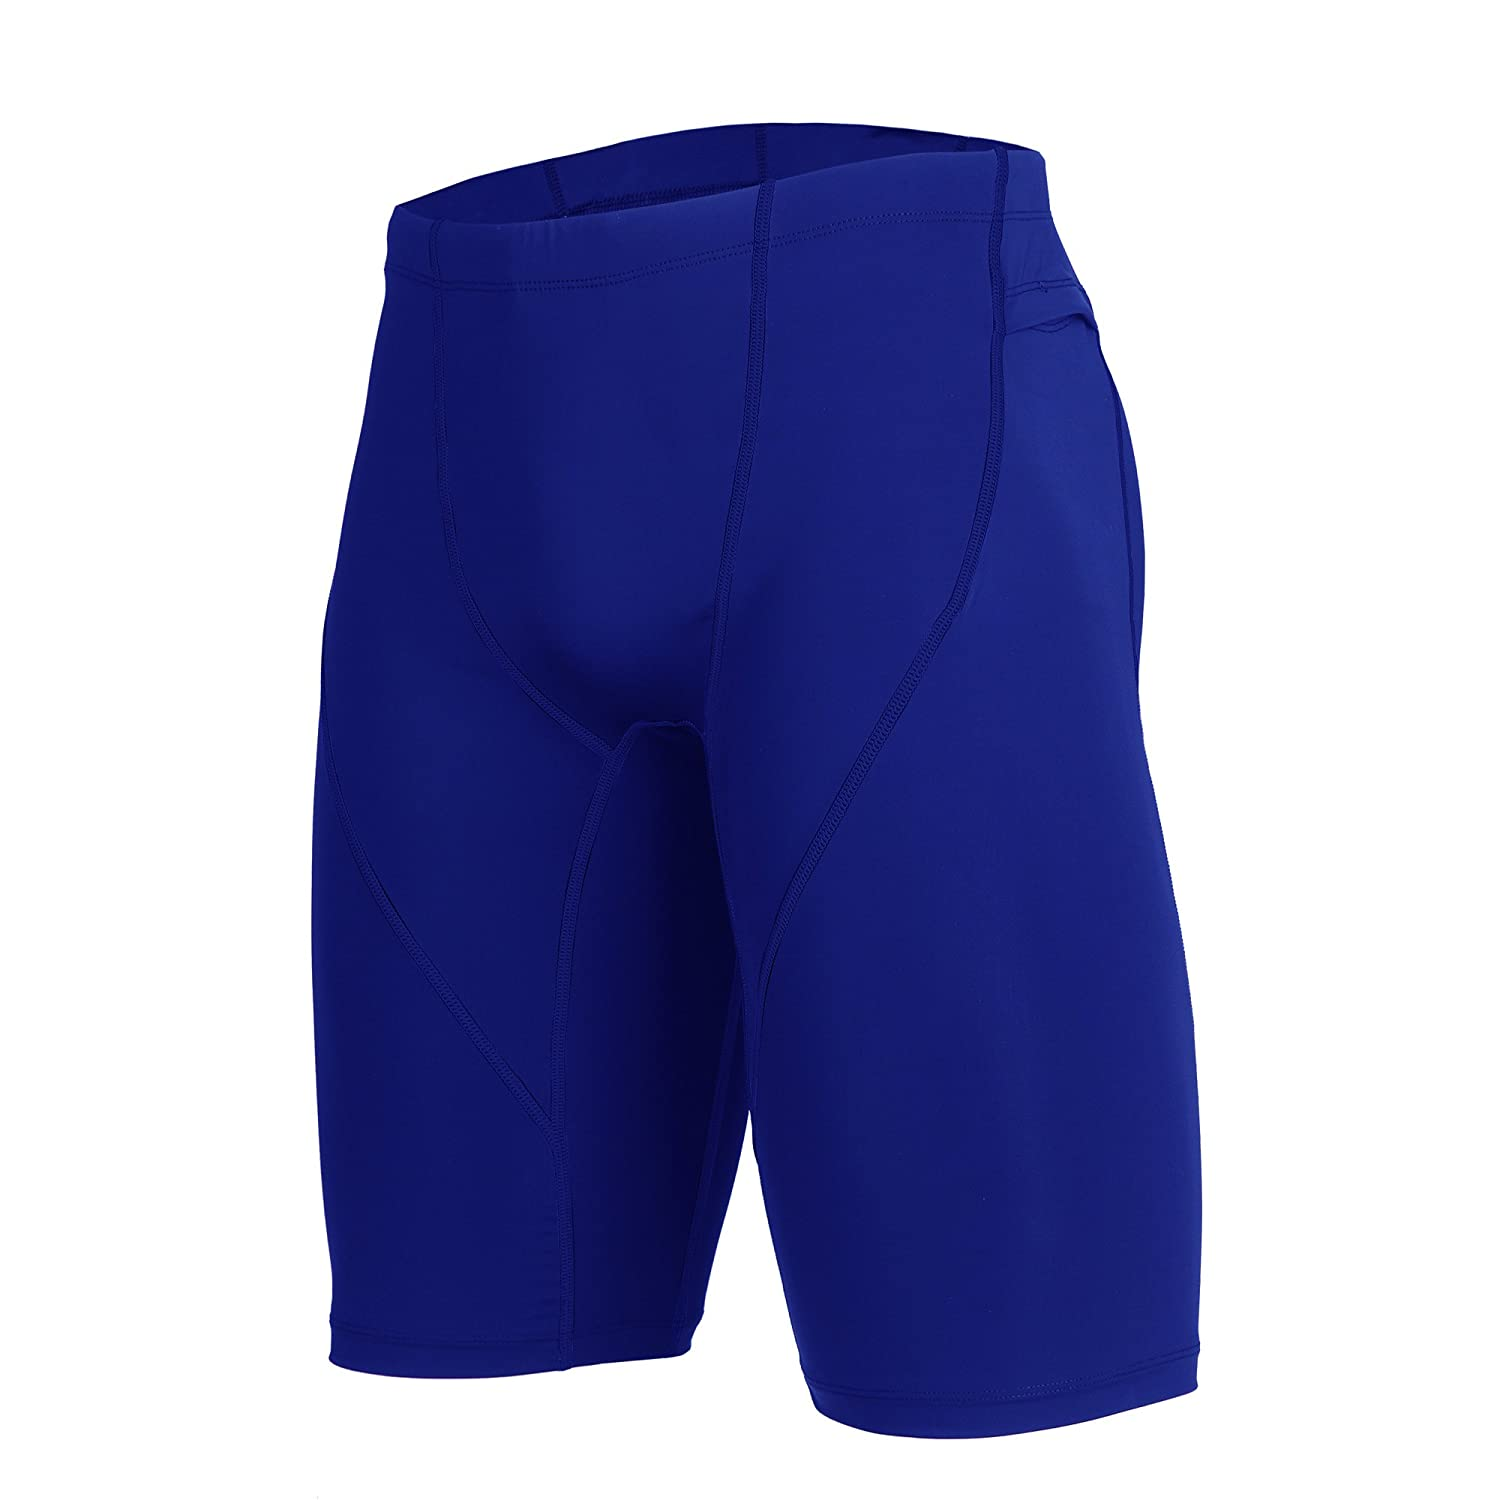 7d29907aed31 The compression shorts material:80% Polyester & 20% spandex 3cm waistband  of base layer do not roll, with adjustable drawstring for better fit